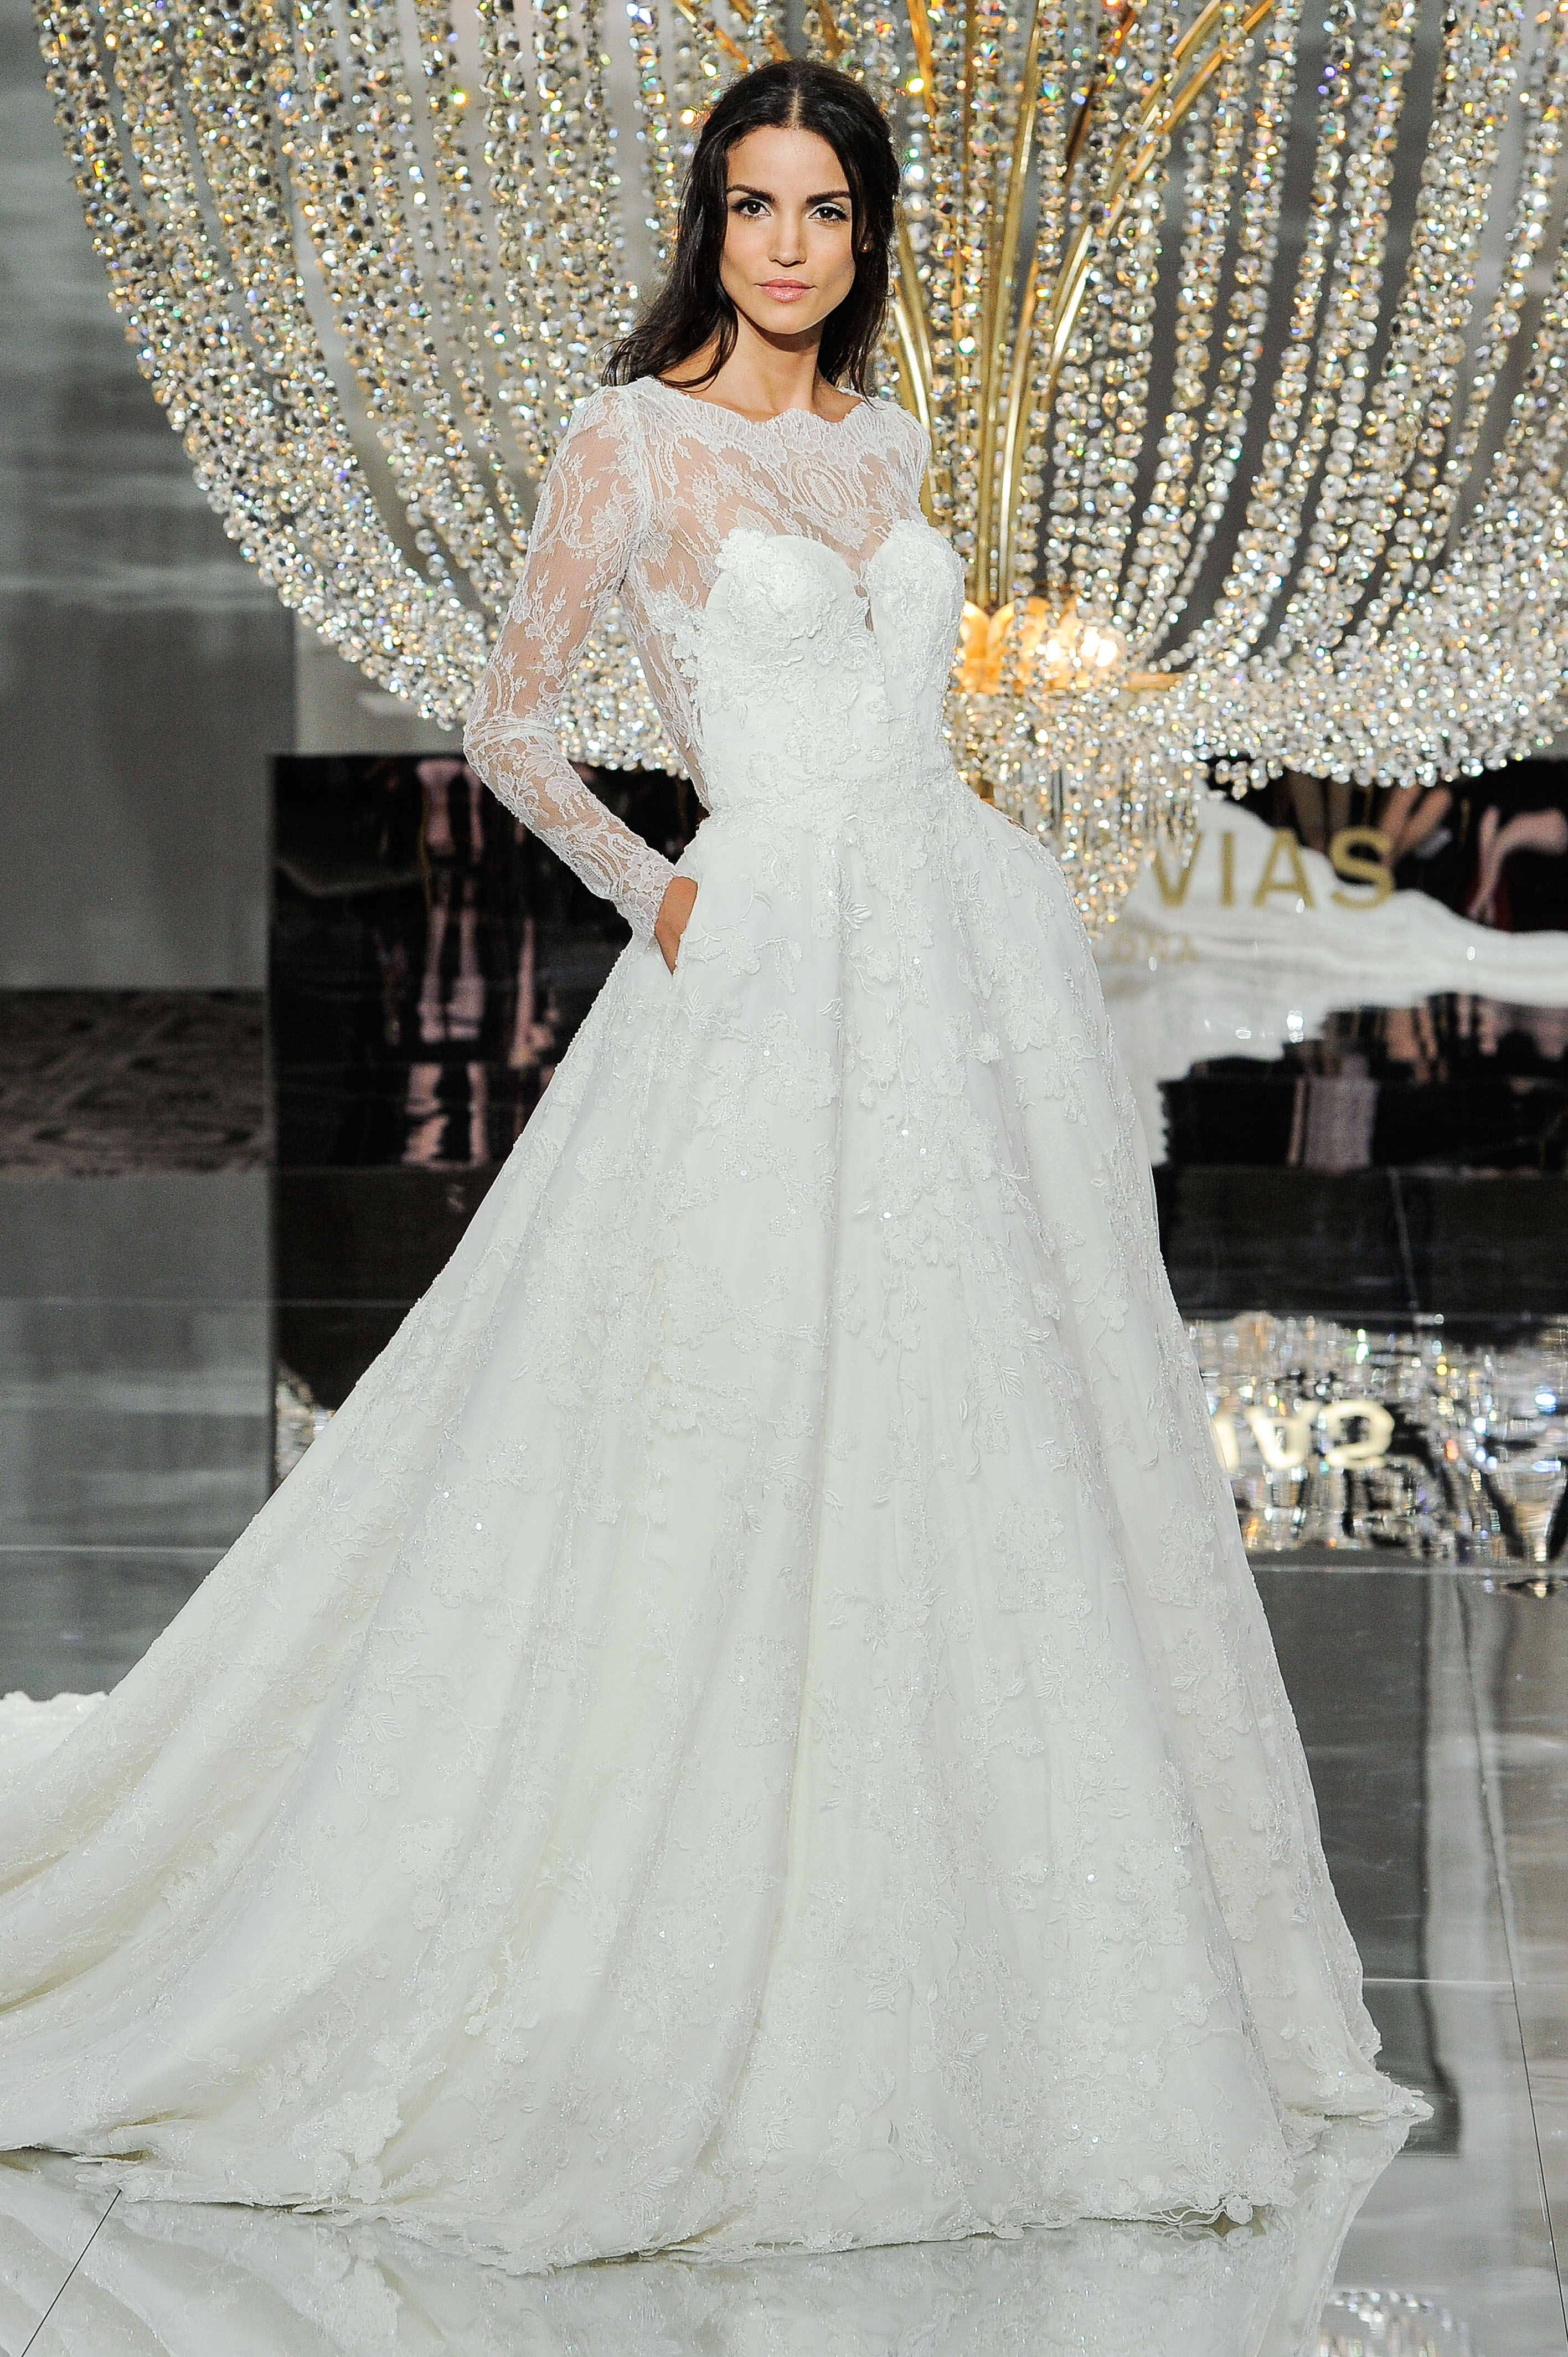 pronovias wedding dress fall 2018 long sleeves lace illusion ball gown